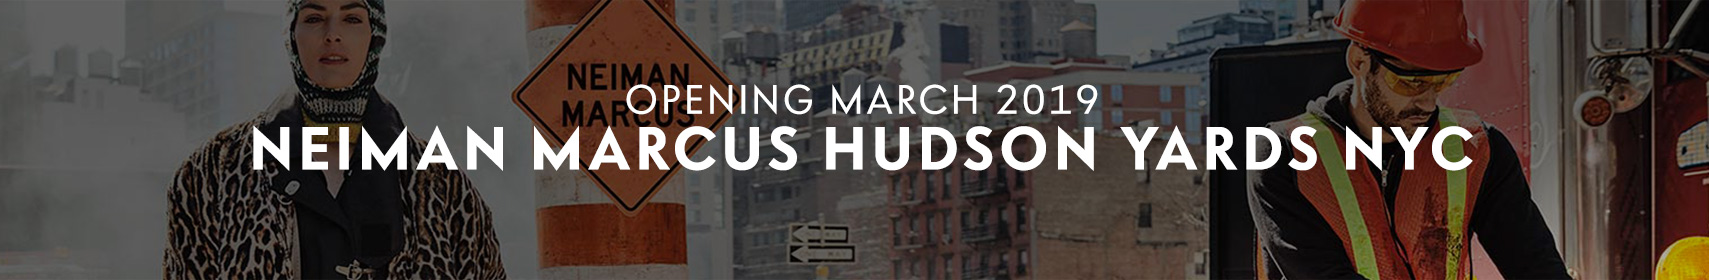 Neiman Marcus Hudson Yards NYC - Opening March 2019